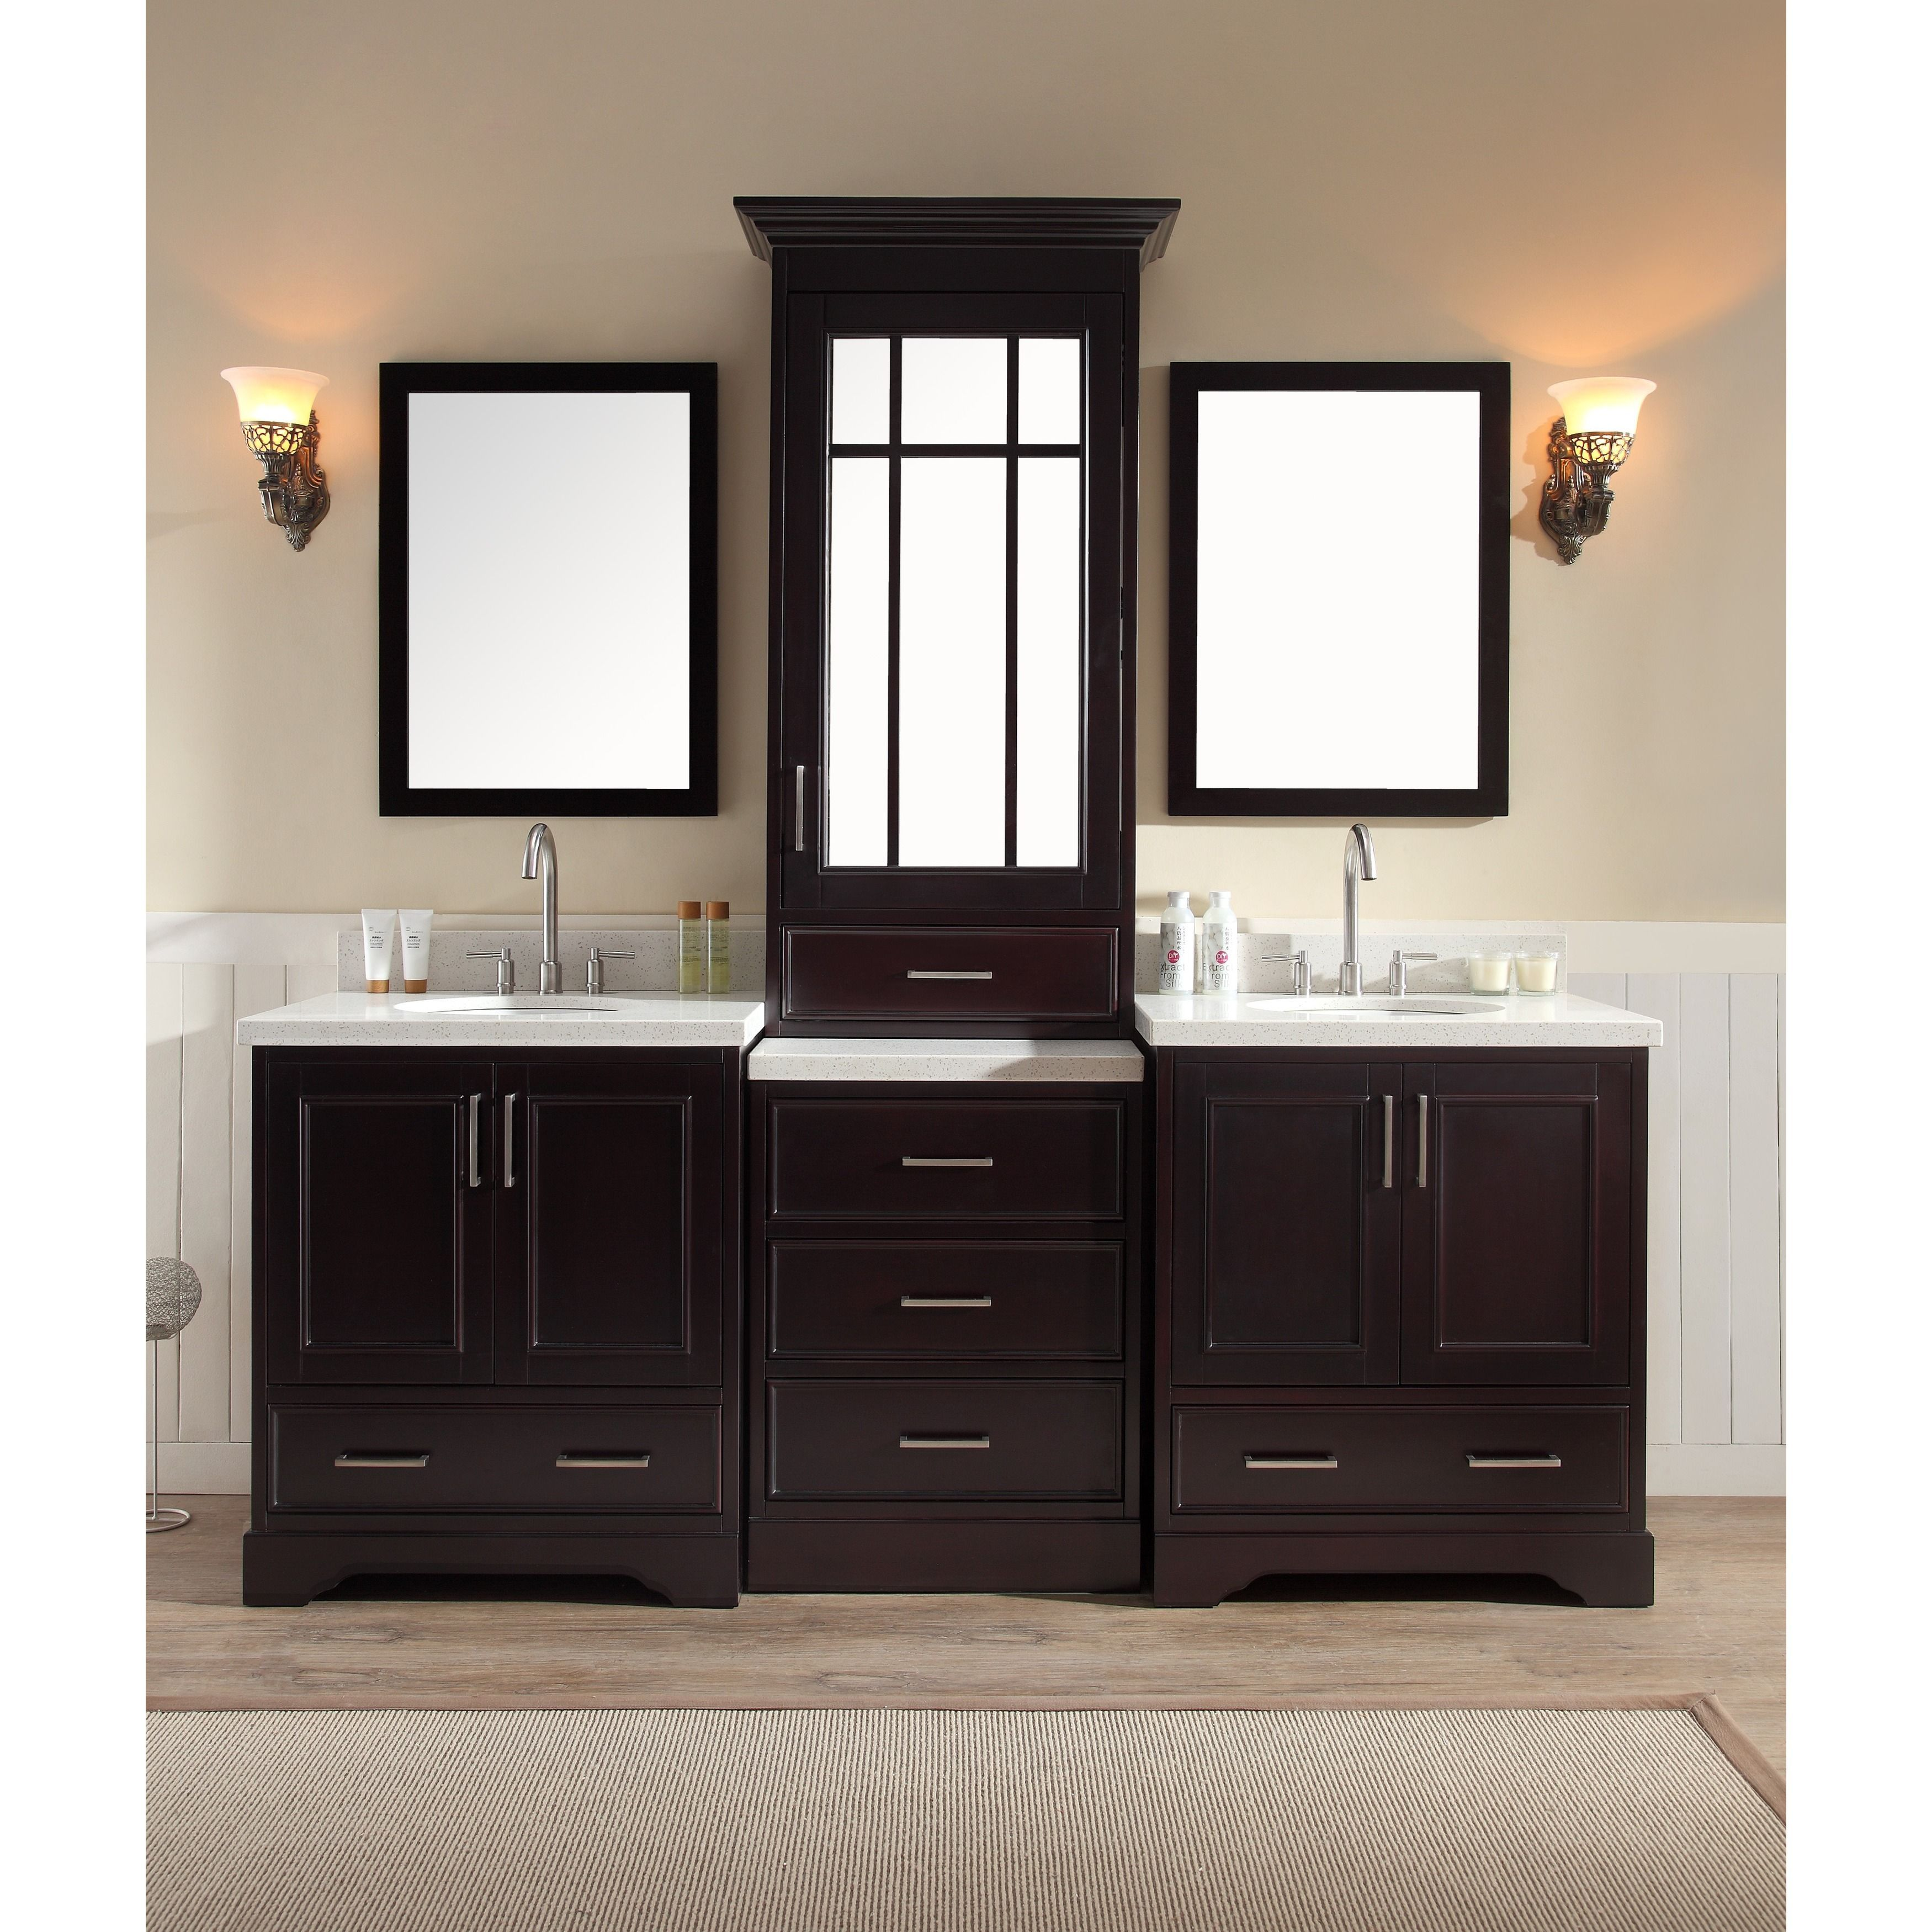 Ariel Stafford 85 Inch Double Sink Espresso Brown Vanity Set With Center Medicine Cabinet With Images Double Sink Vanity Double Sink Bathroom Double Sink Bathroom Vanity